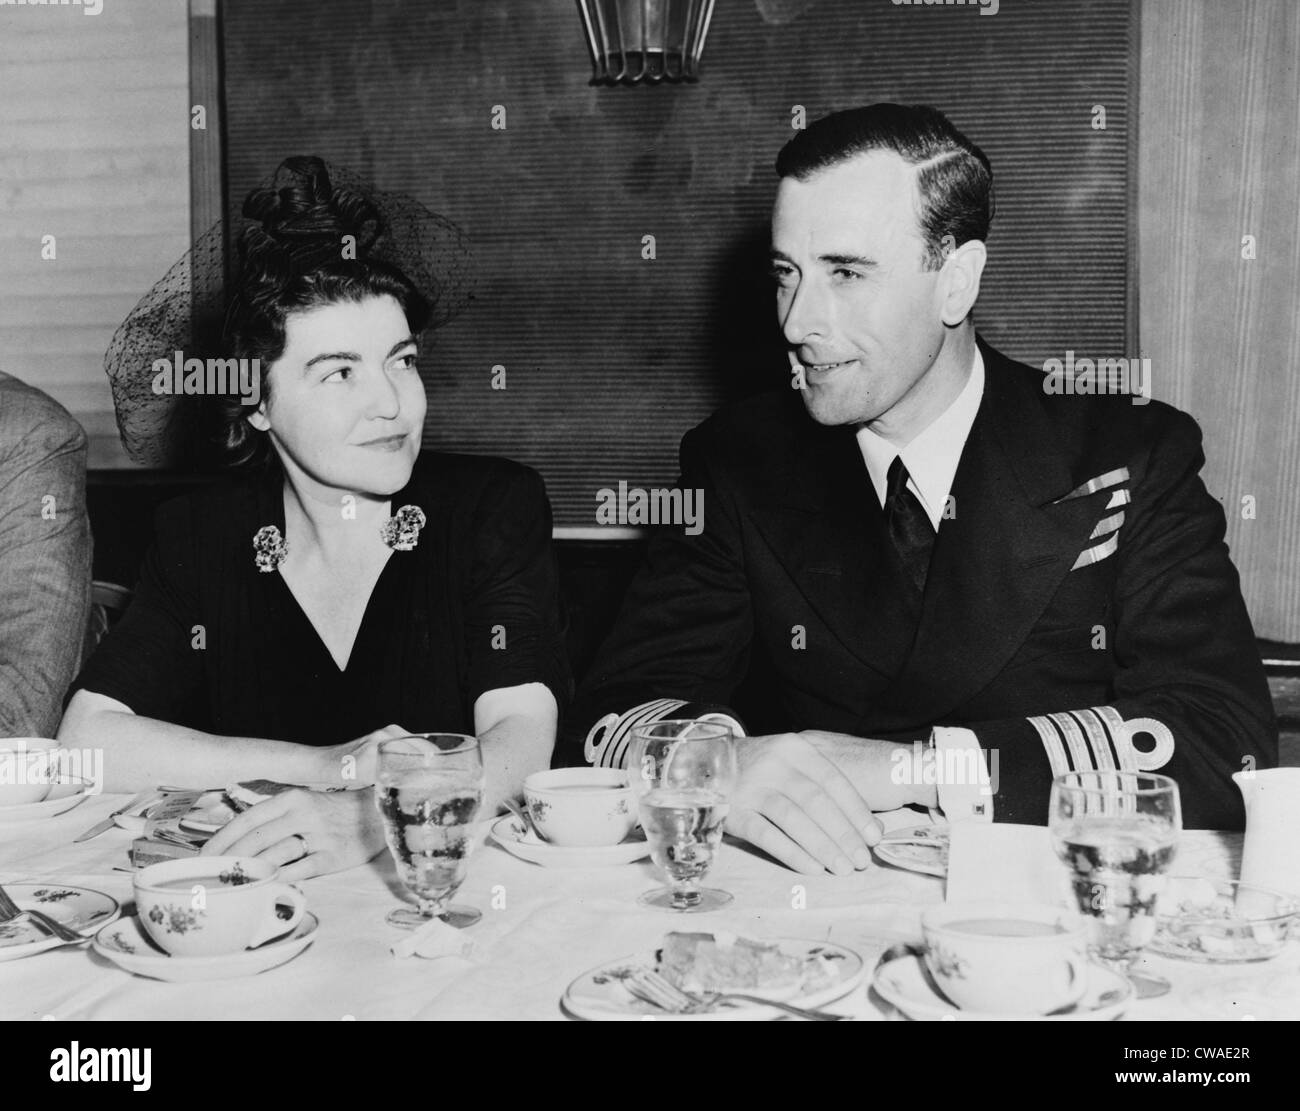 Irene Kuhn seated with Lord Louis Mountbatten at 1941 Overseas Press Club luncheon in his honor, New York City. - Stock Image